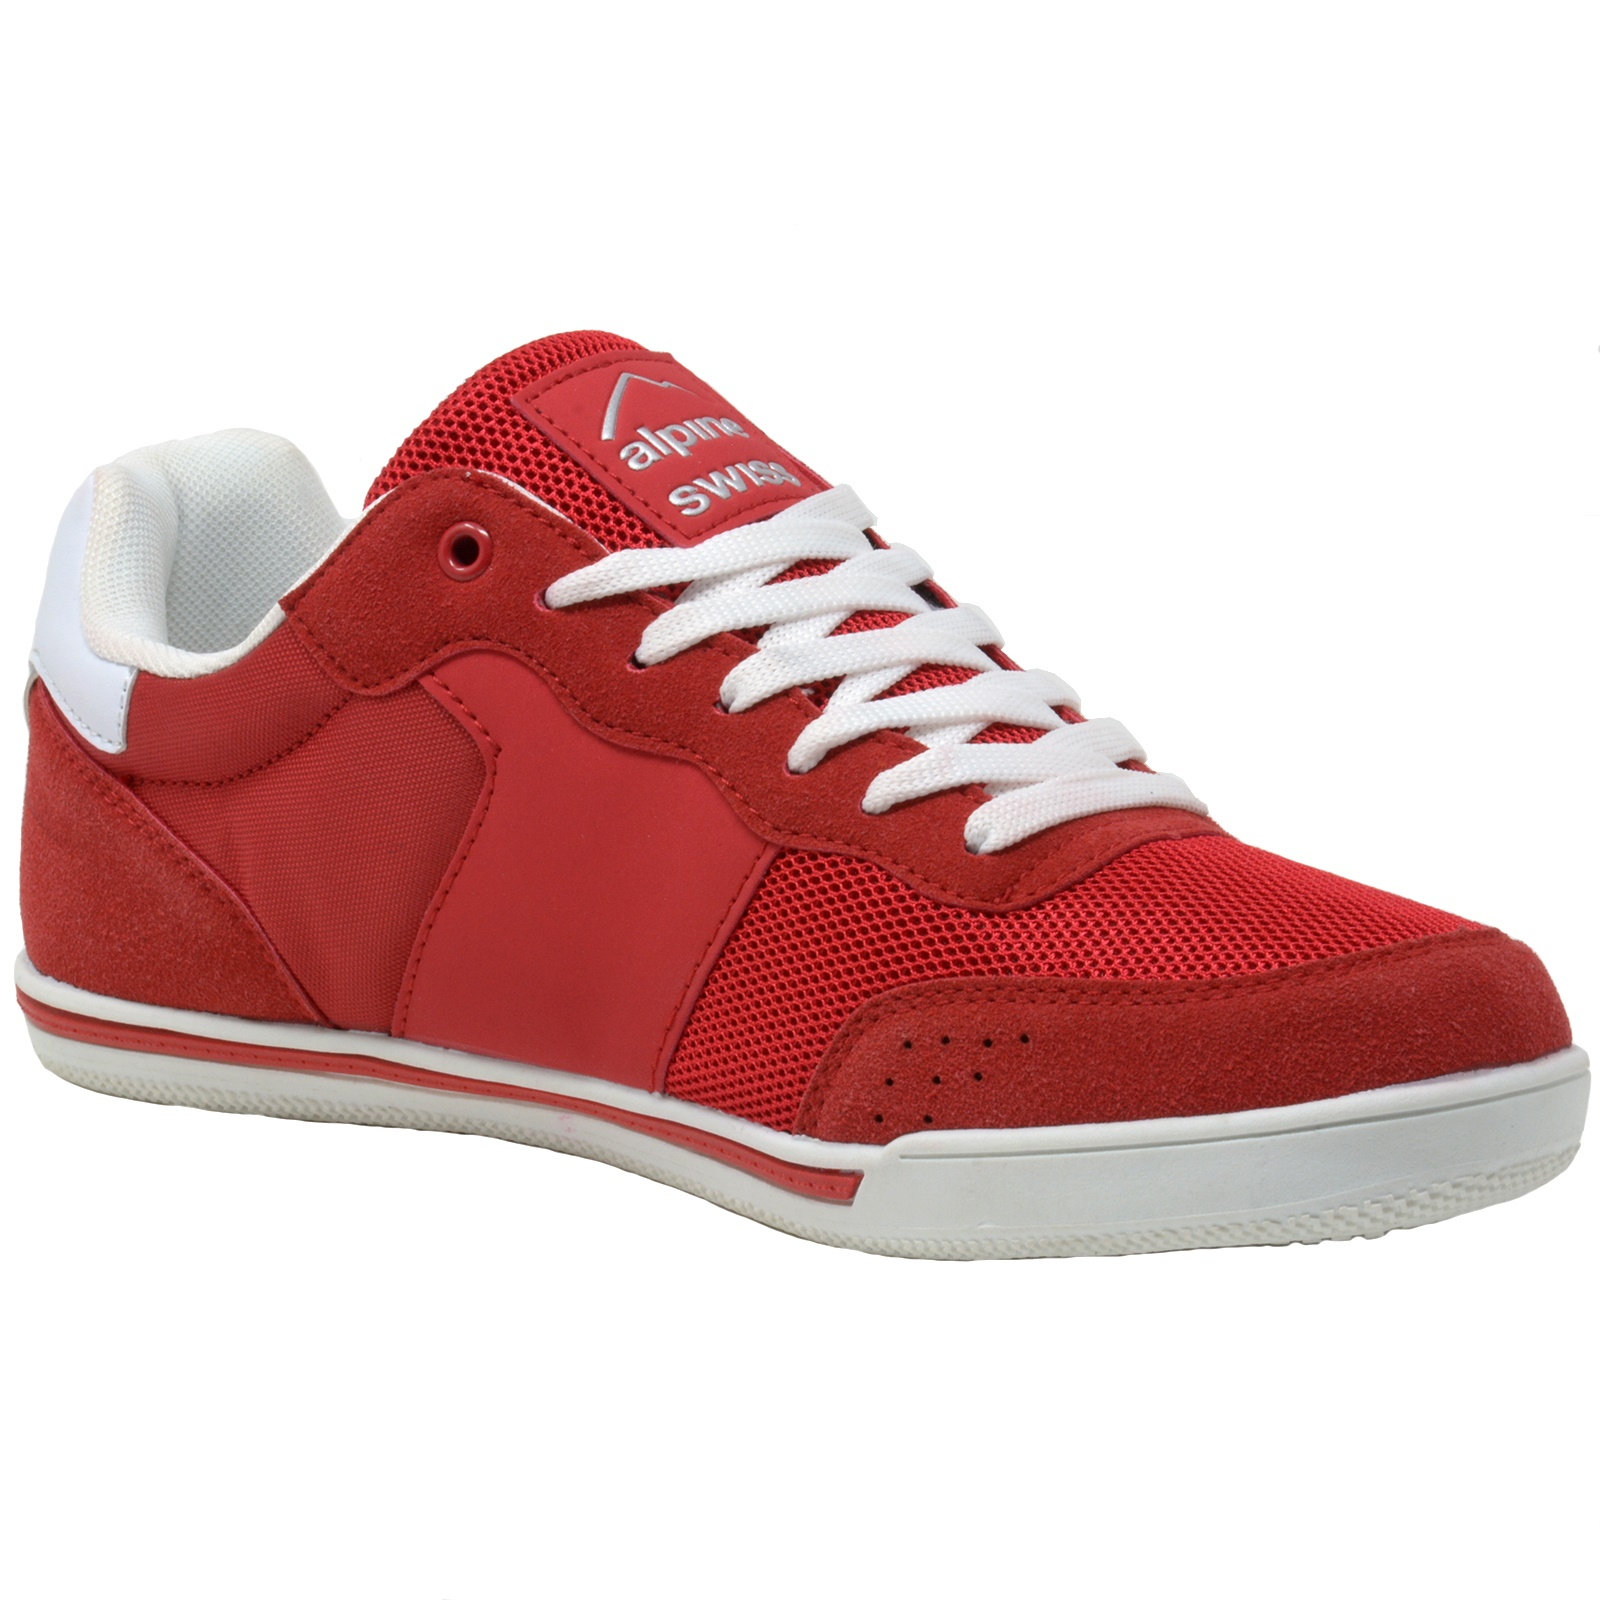 Alpine-Swiss-Liam-Mens-Fashion-Sneakers-Suede-Trim-Low-Top-Lace-Up-Tennis-Shoes thumbnail 56